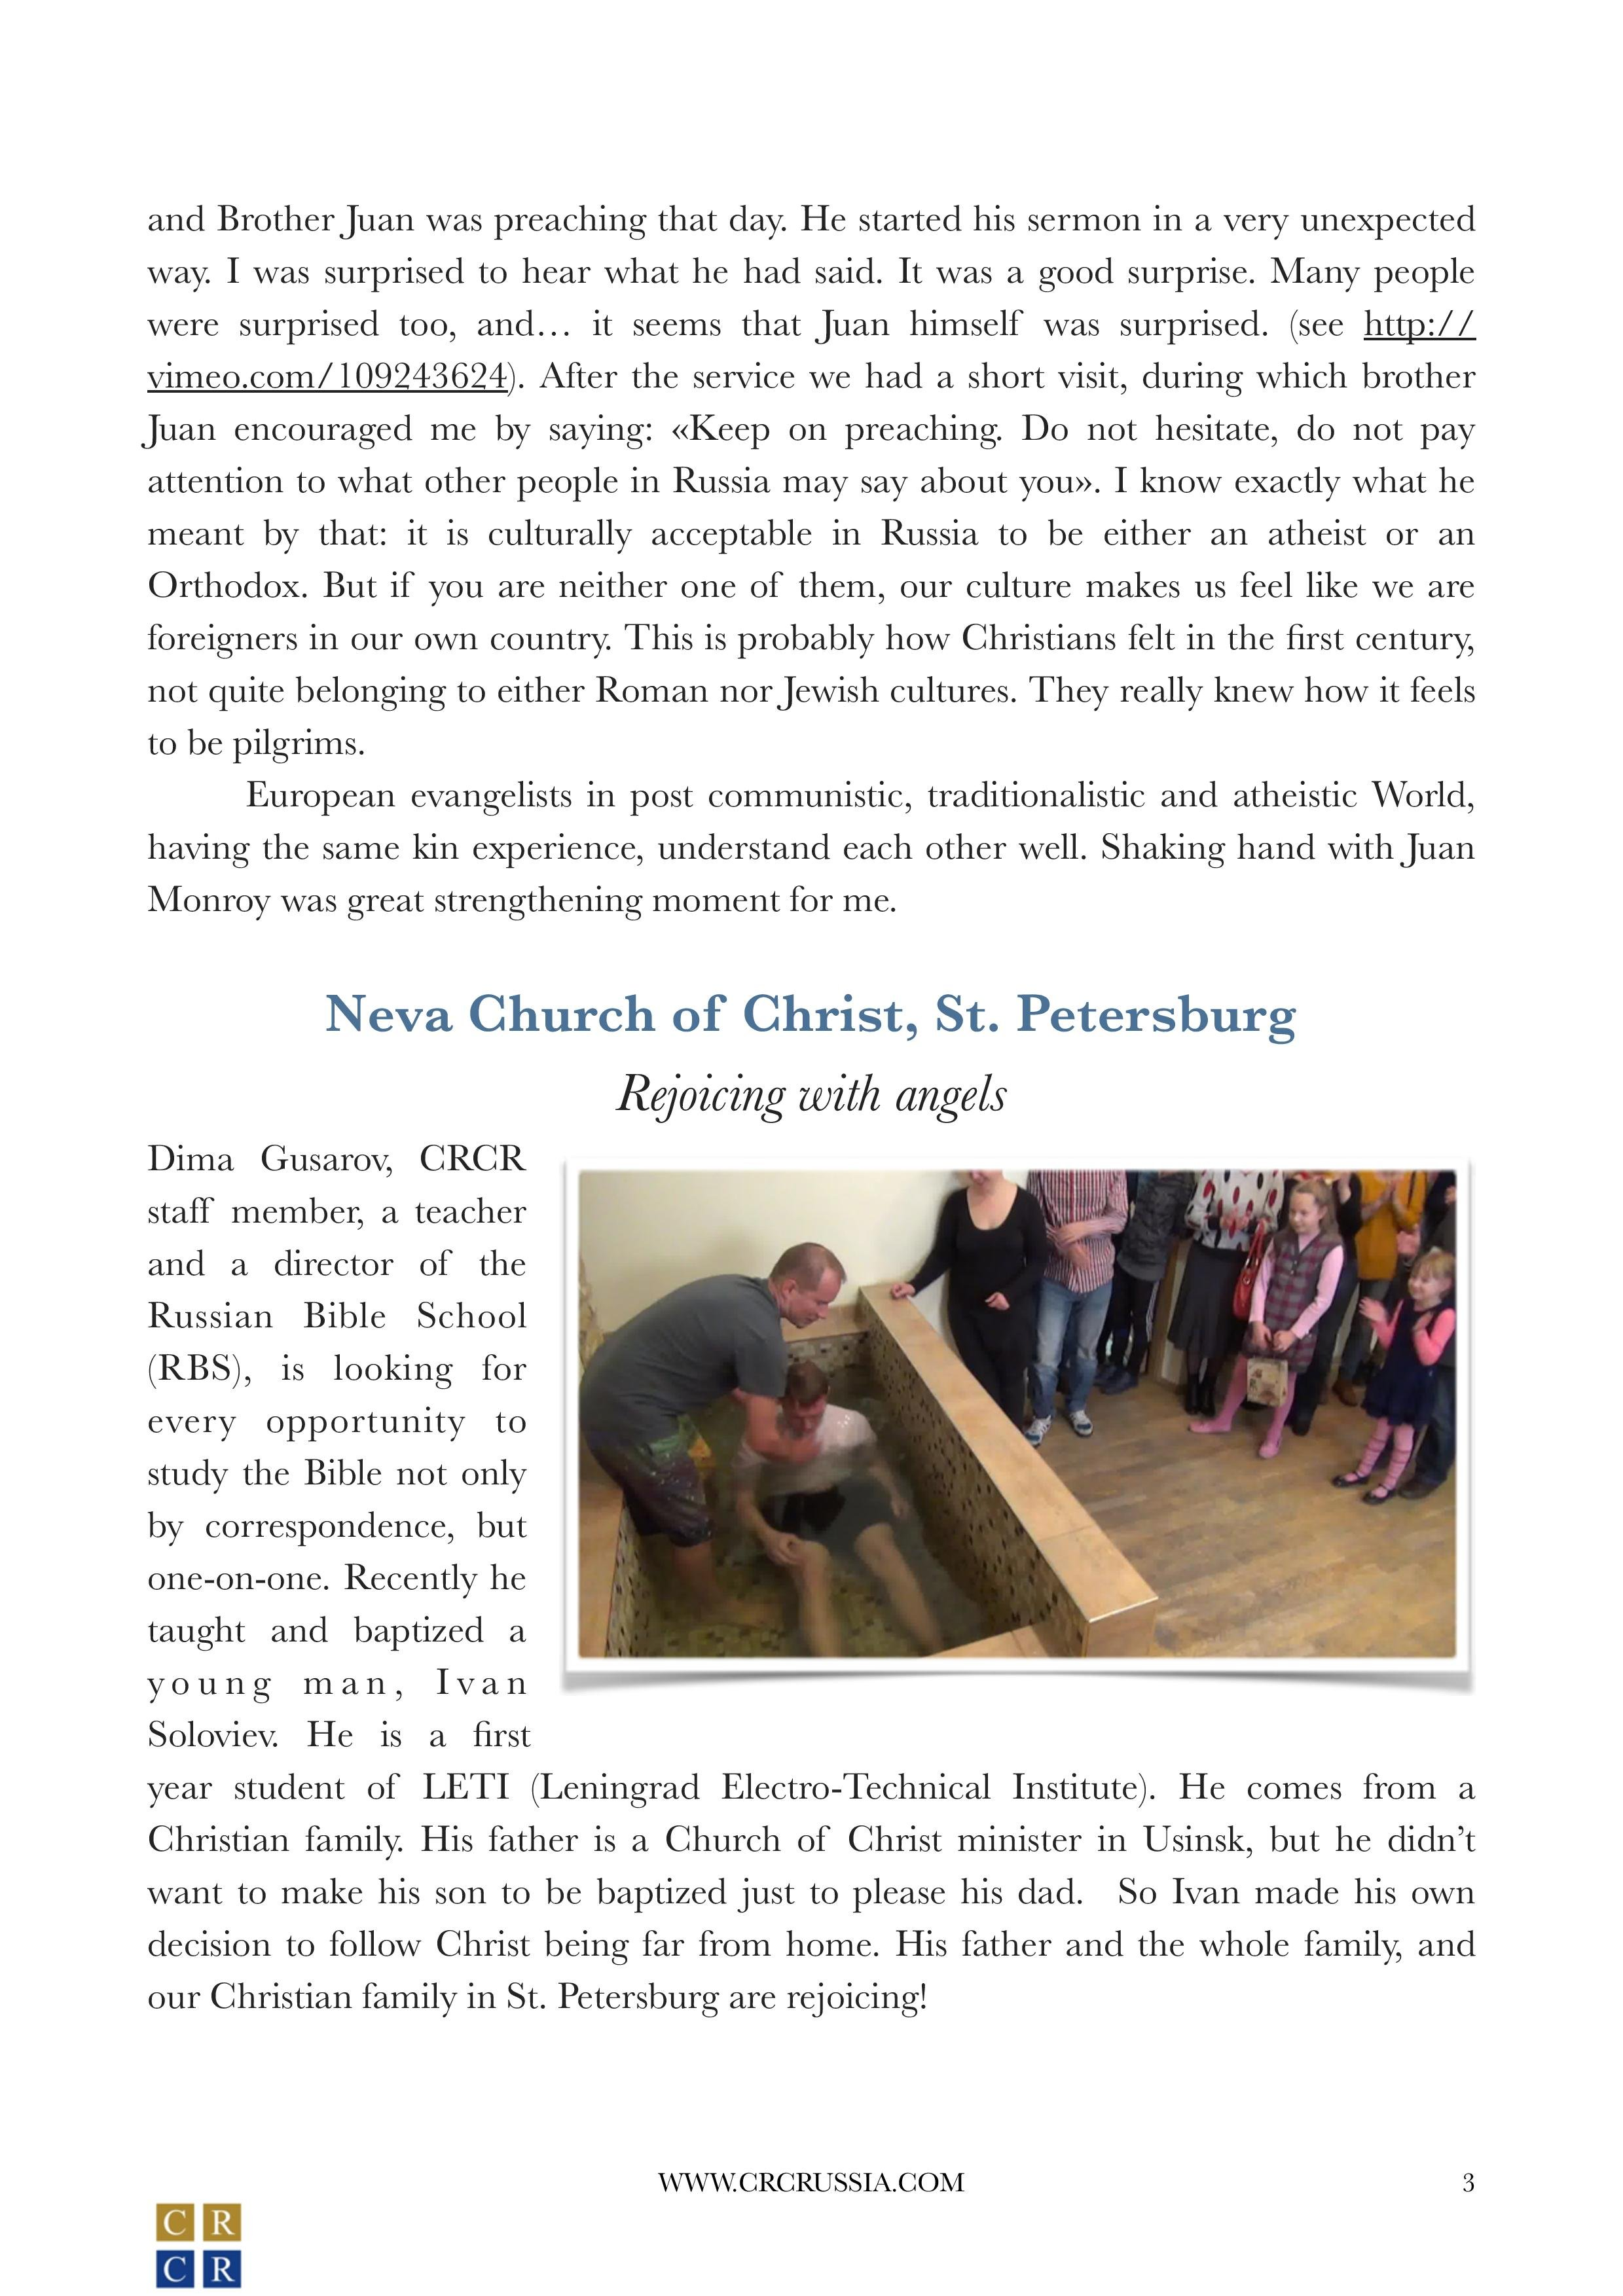 October 2014 CRCRNewsletter-page-003